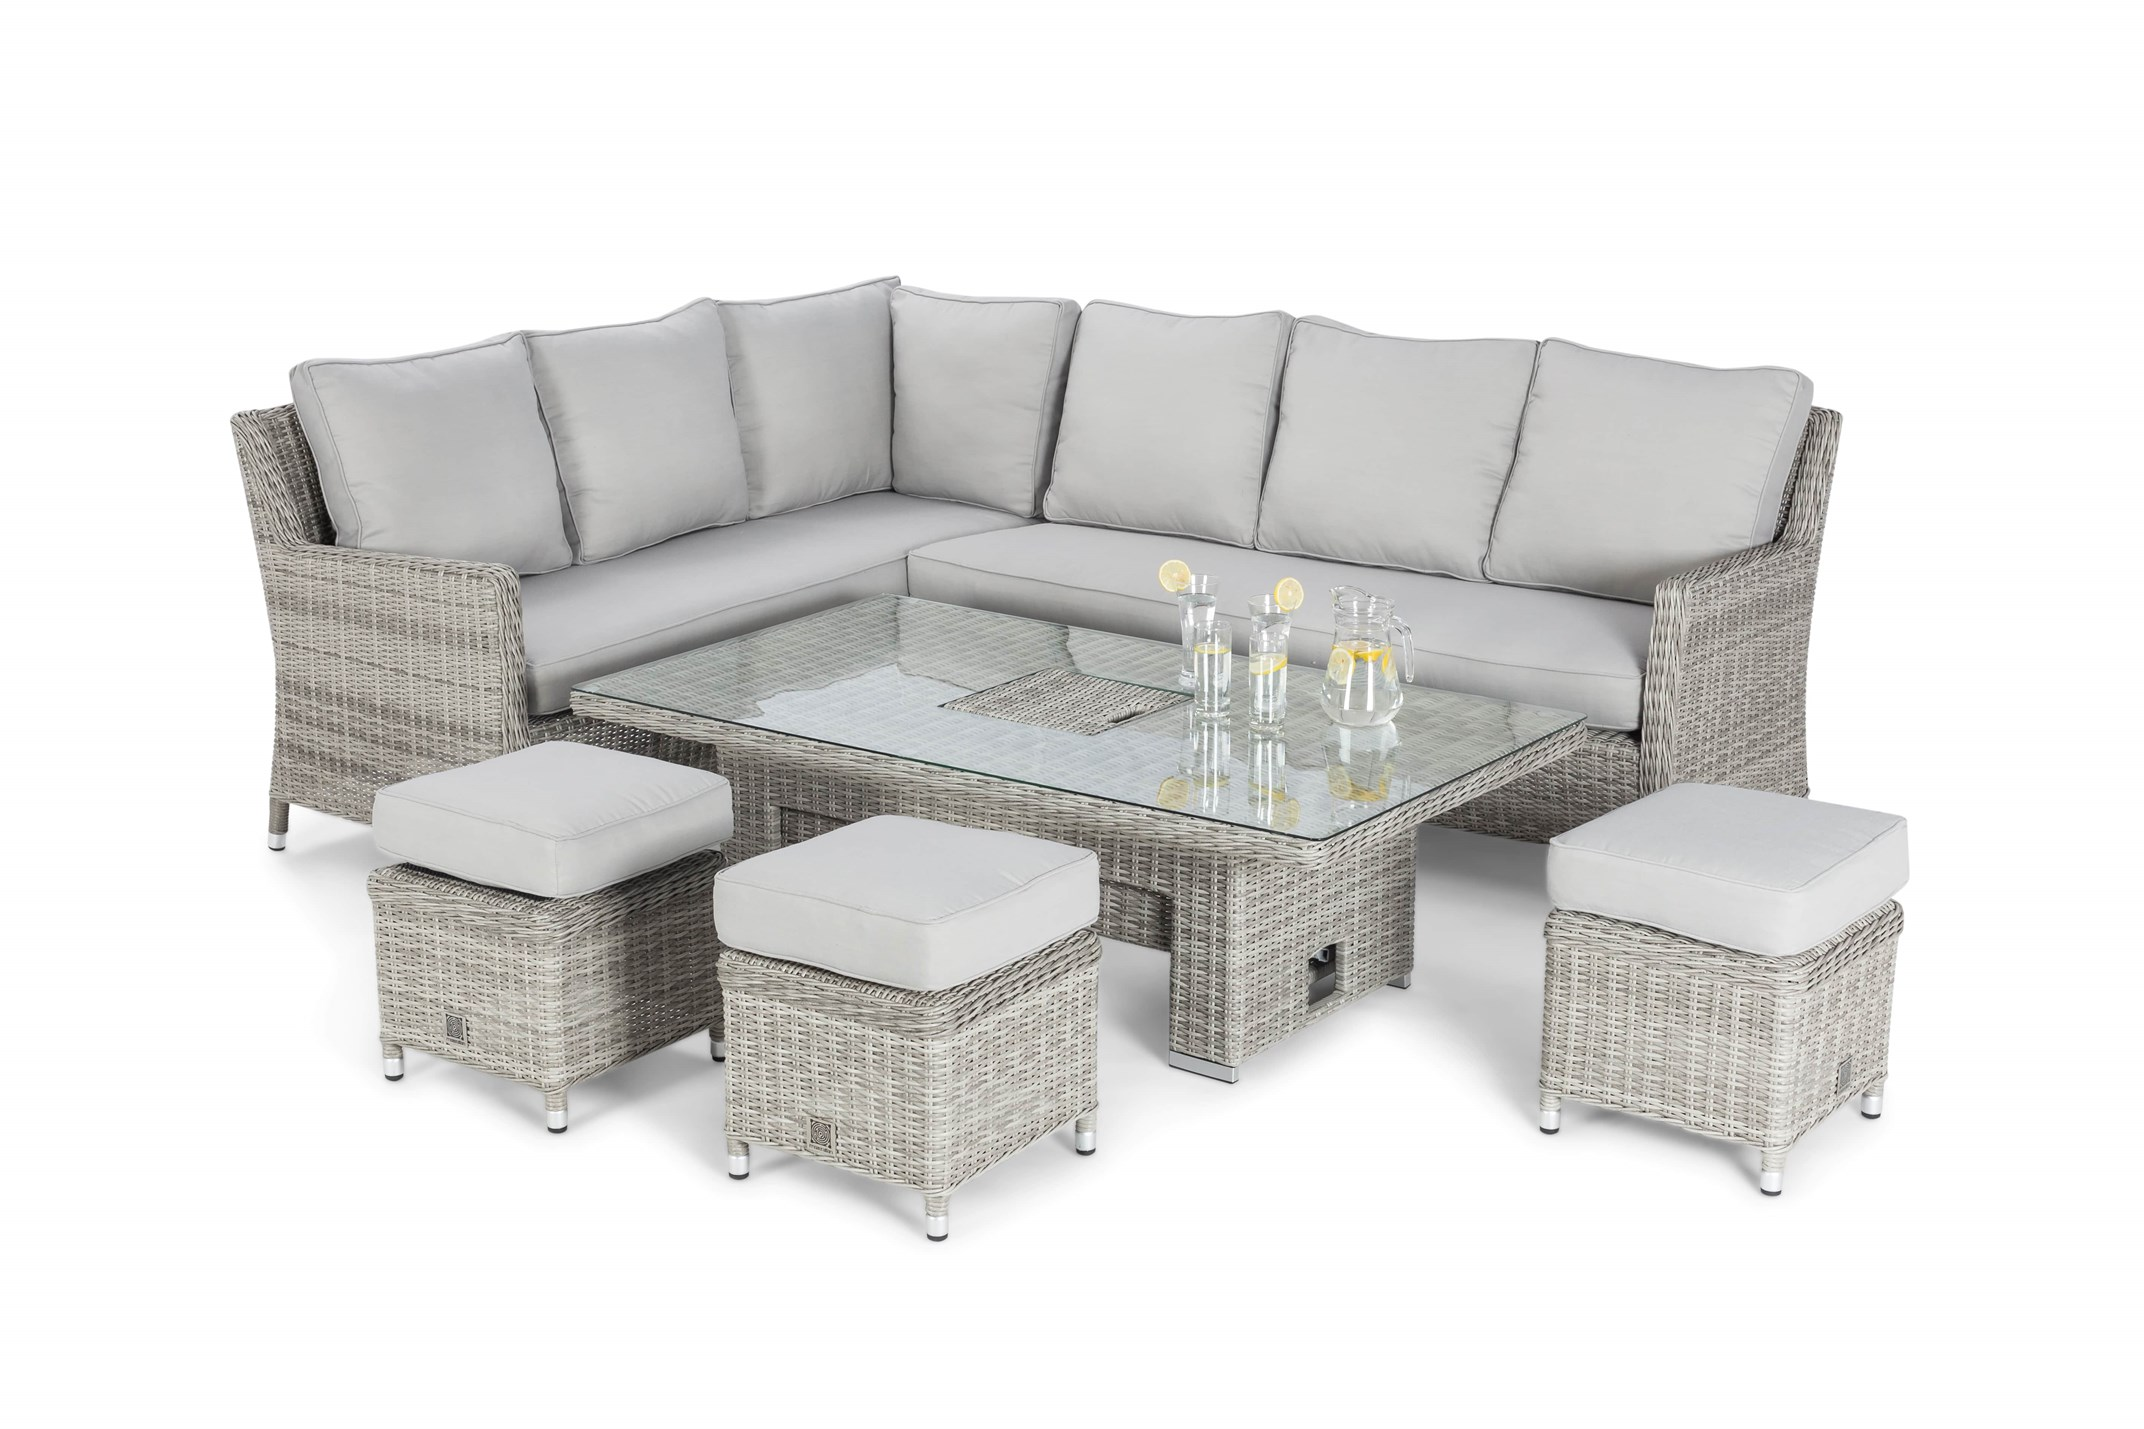 Corner Garden Dining Set Oxford Ez Living Furniture